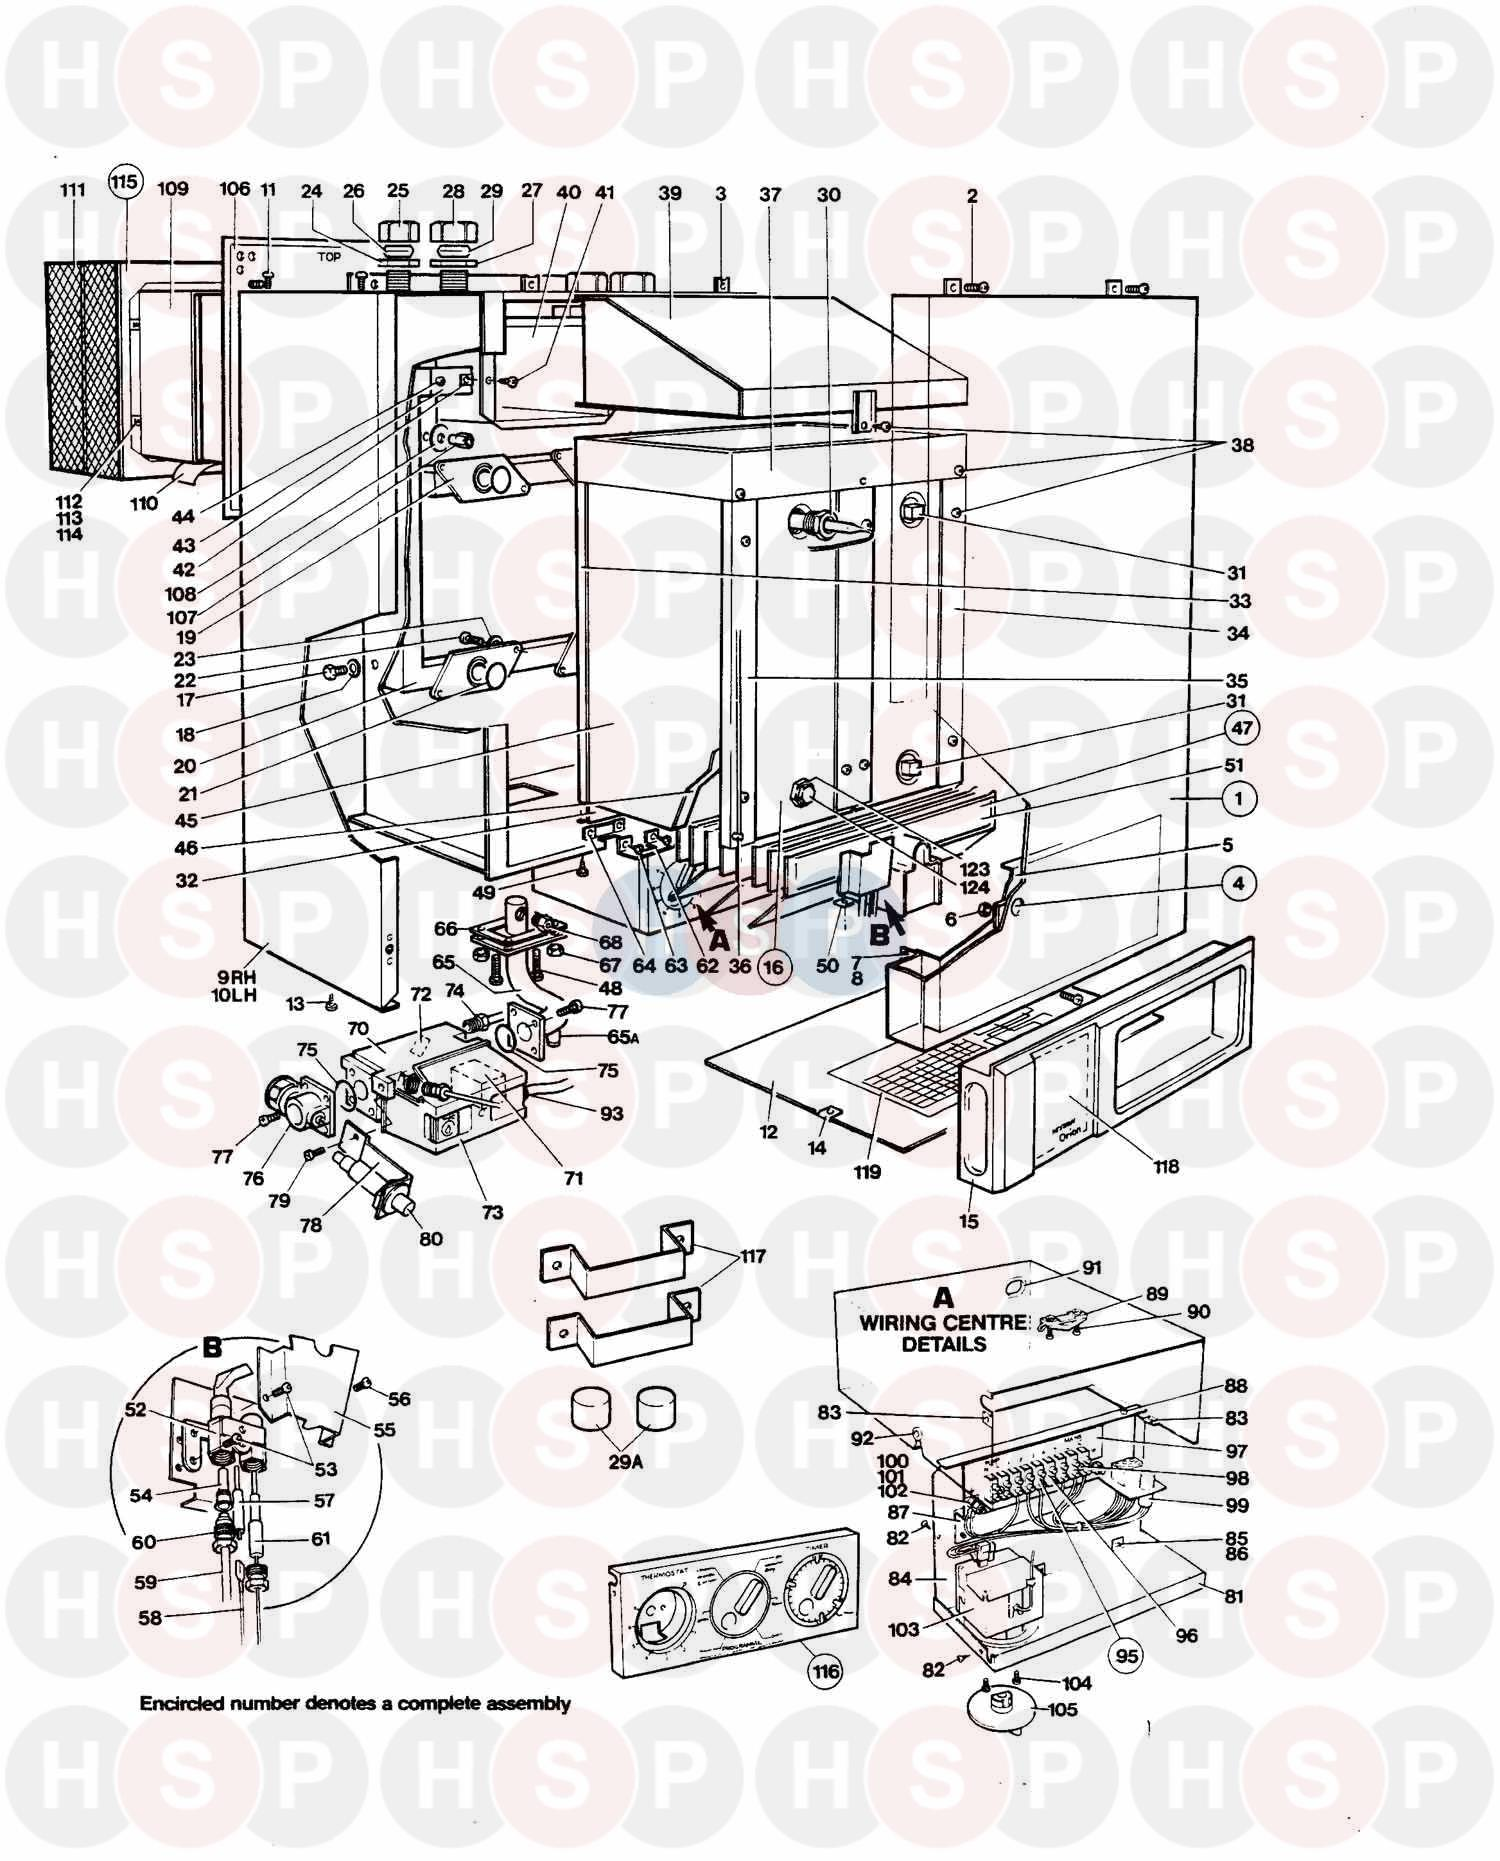 thorn orion 50 b 1991 assembly diagram heating spare parts. Black Bedroom Furniture Sets. Home Design Ideas